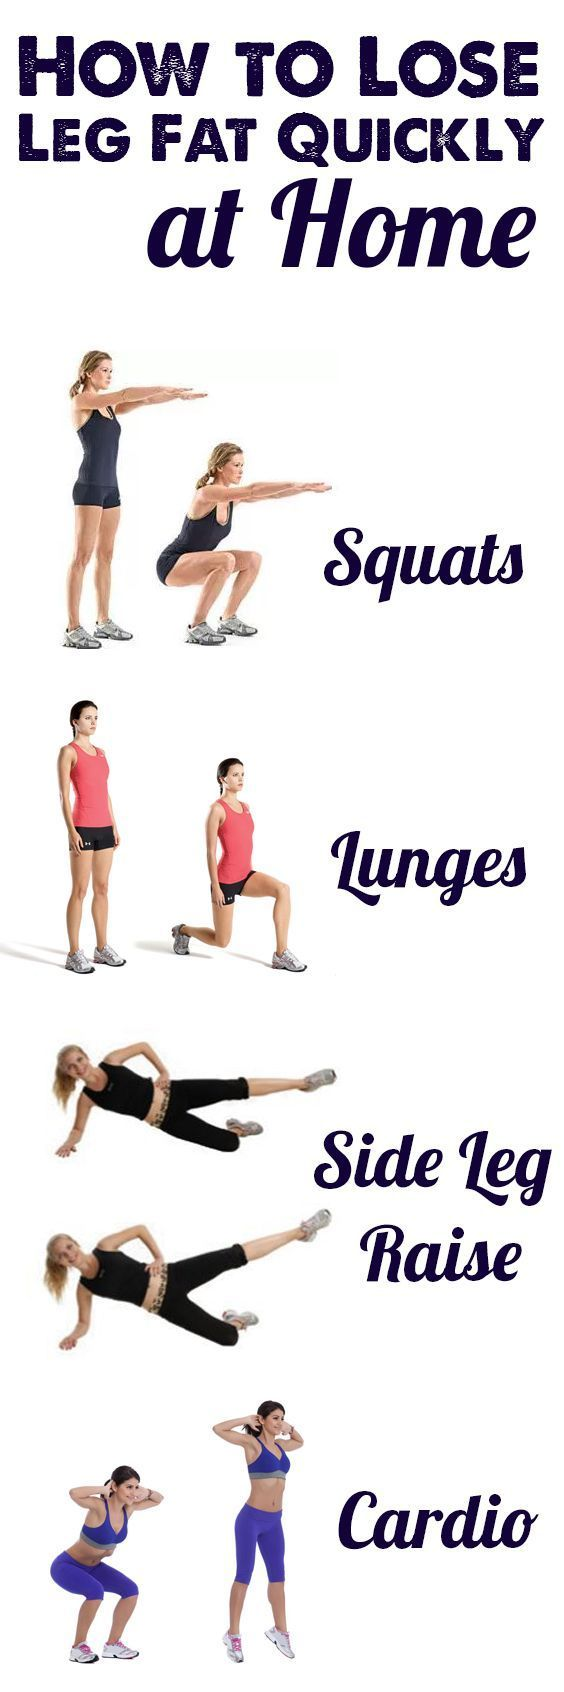 How to lose weight in the legs 3